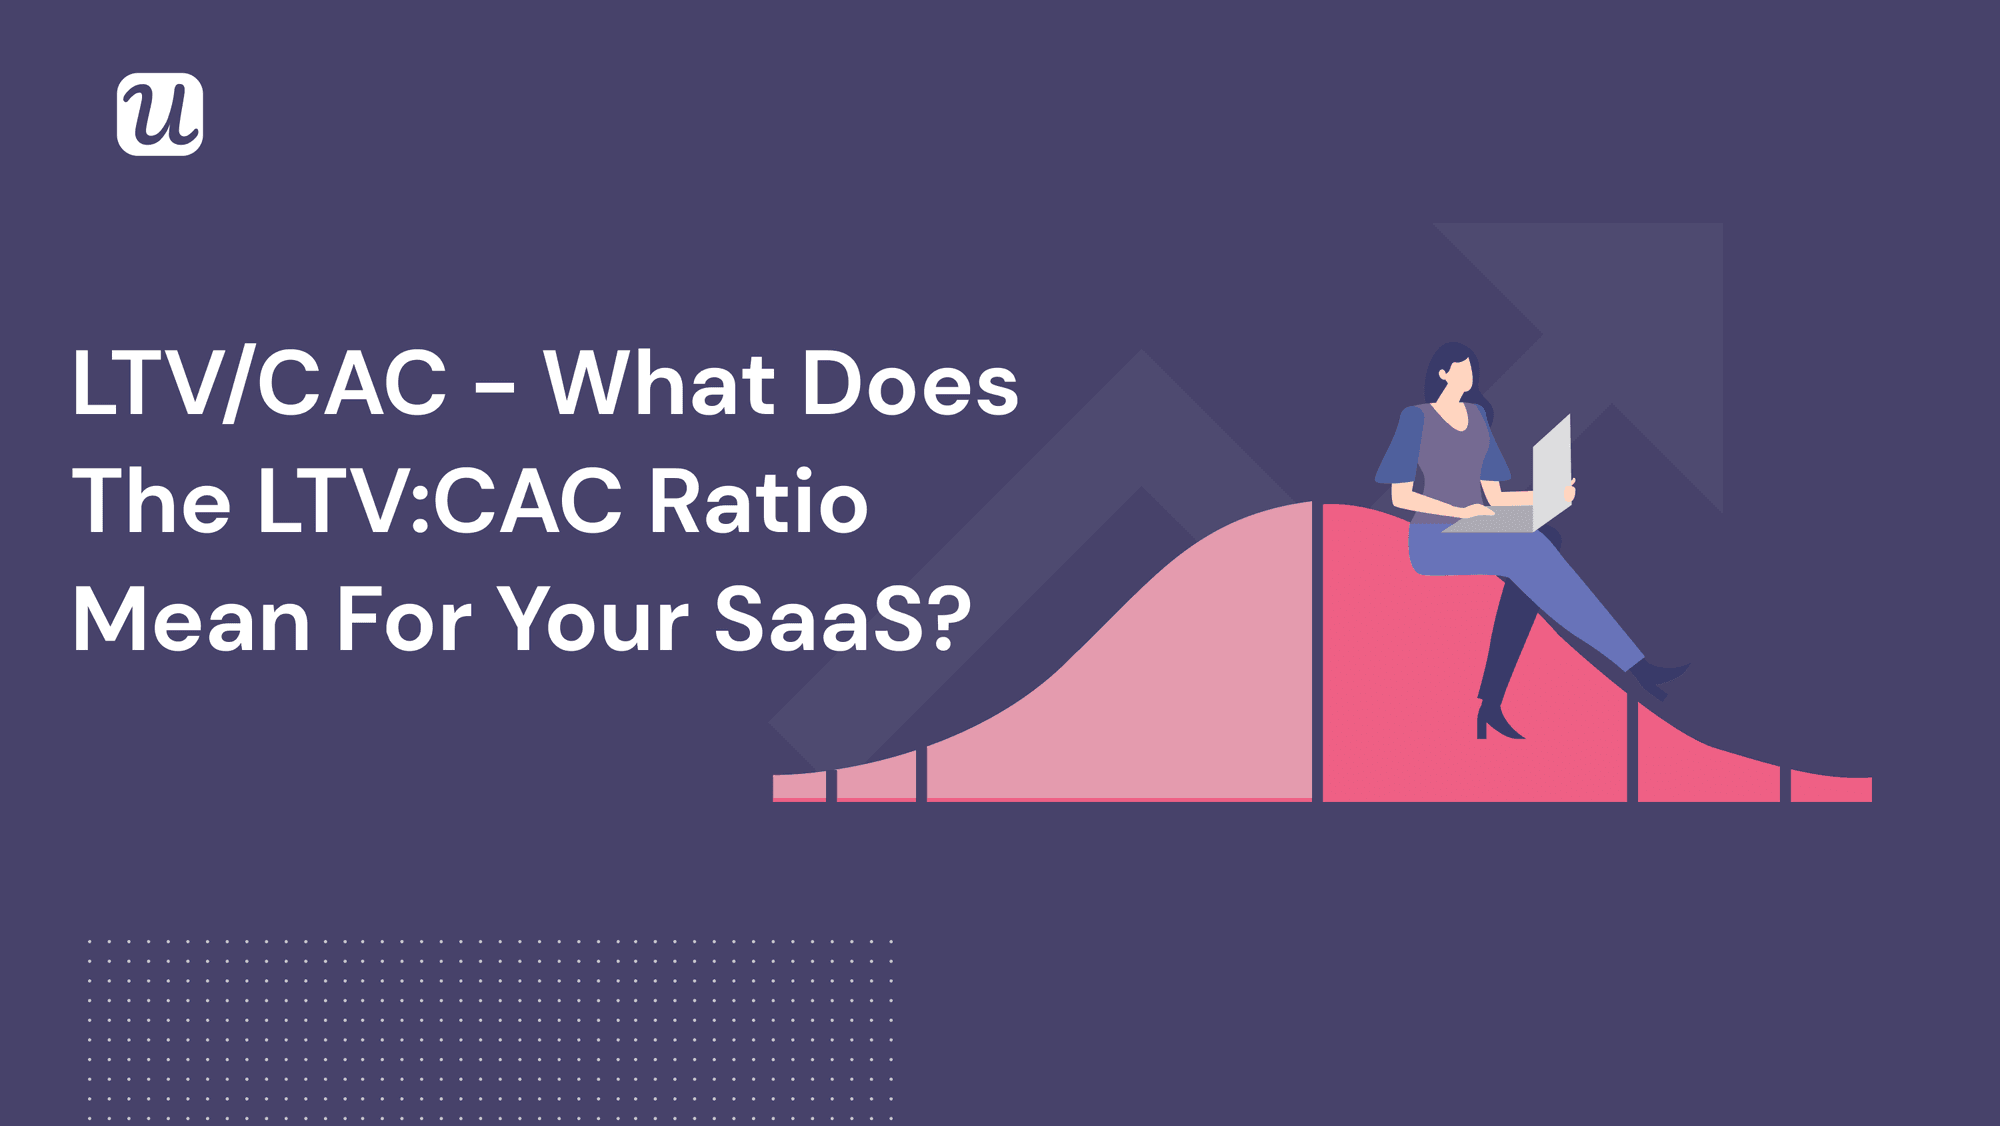 LTV/CAC - What Does The LTV:CAC Ratio Mean For Your SaaS?